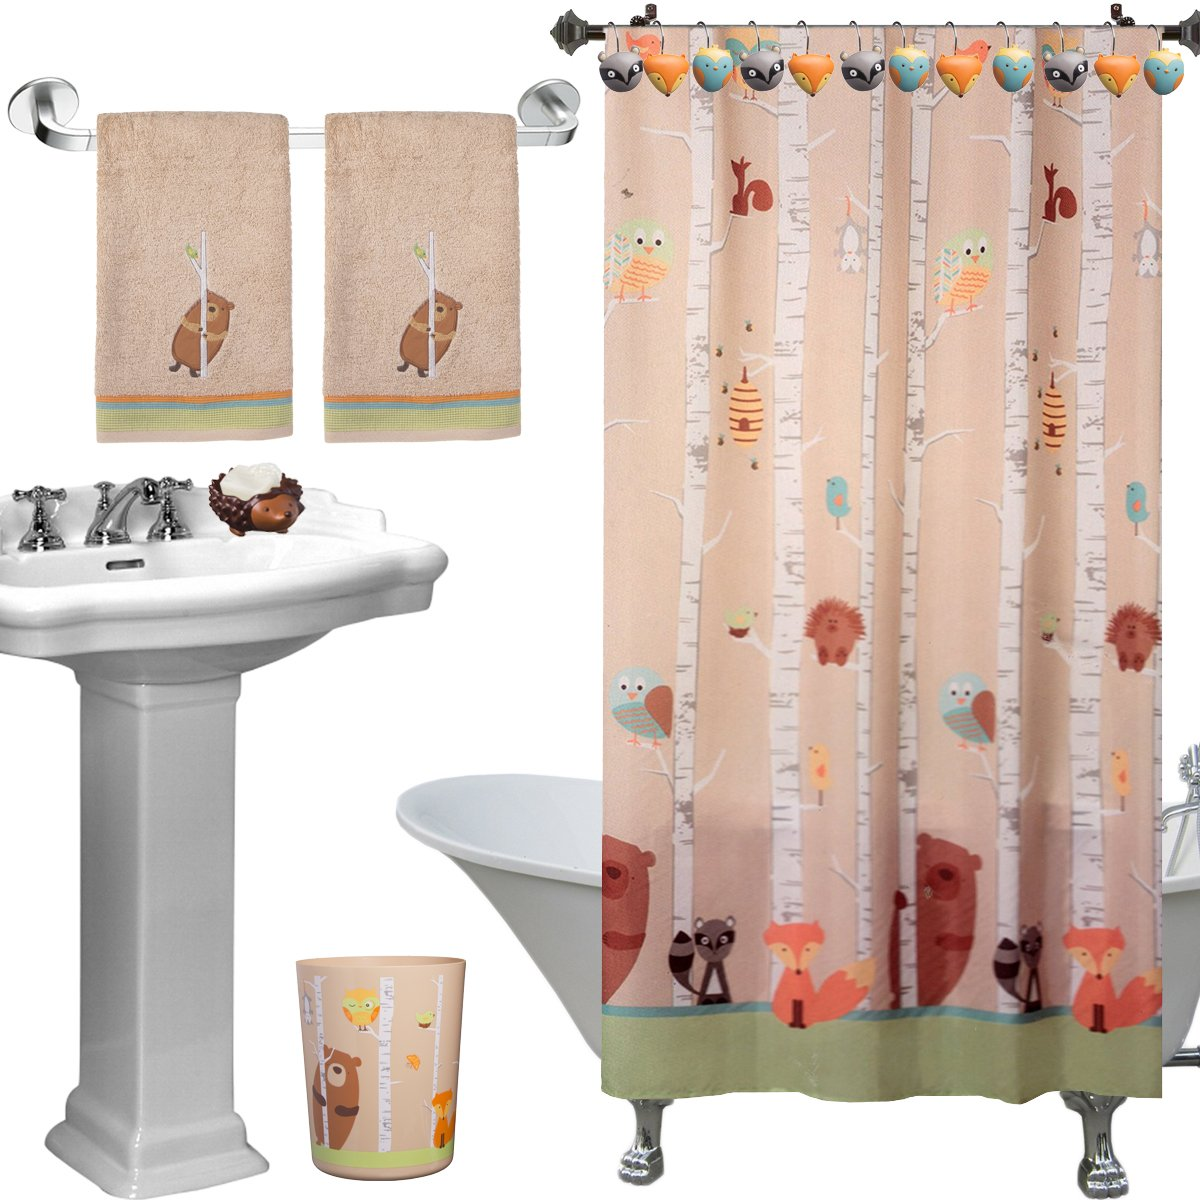 Awesome bathroom sets to brighten your bathroom decor for Bathroom decor on amazon